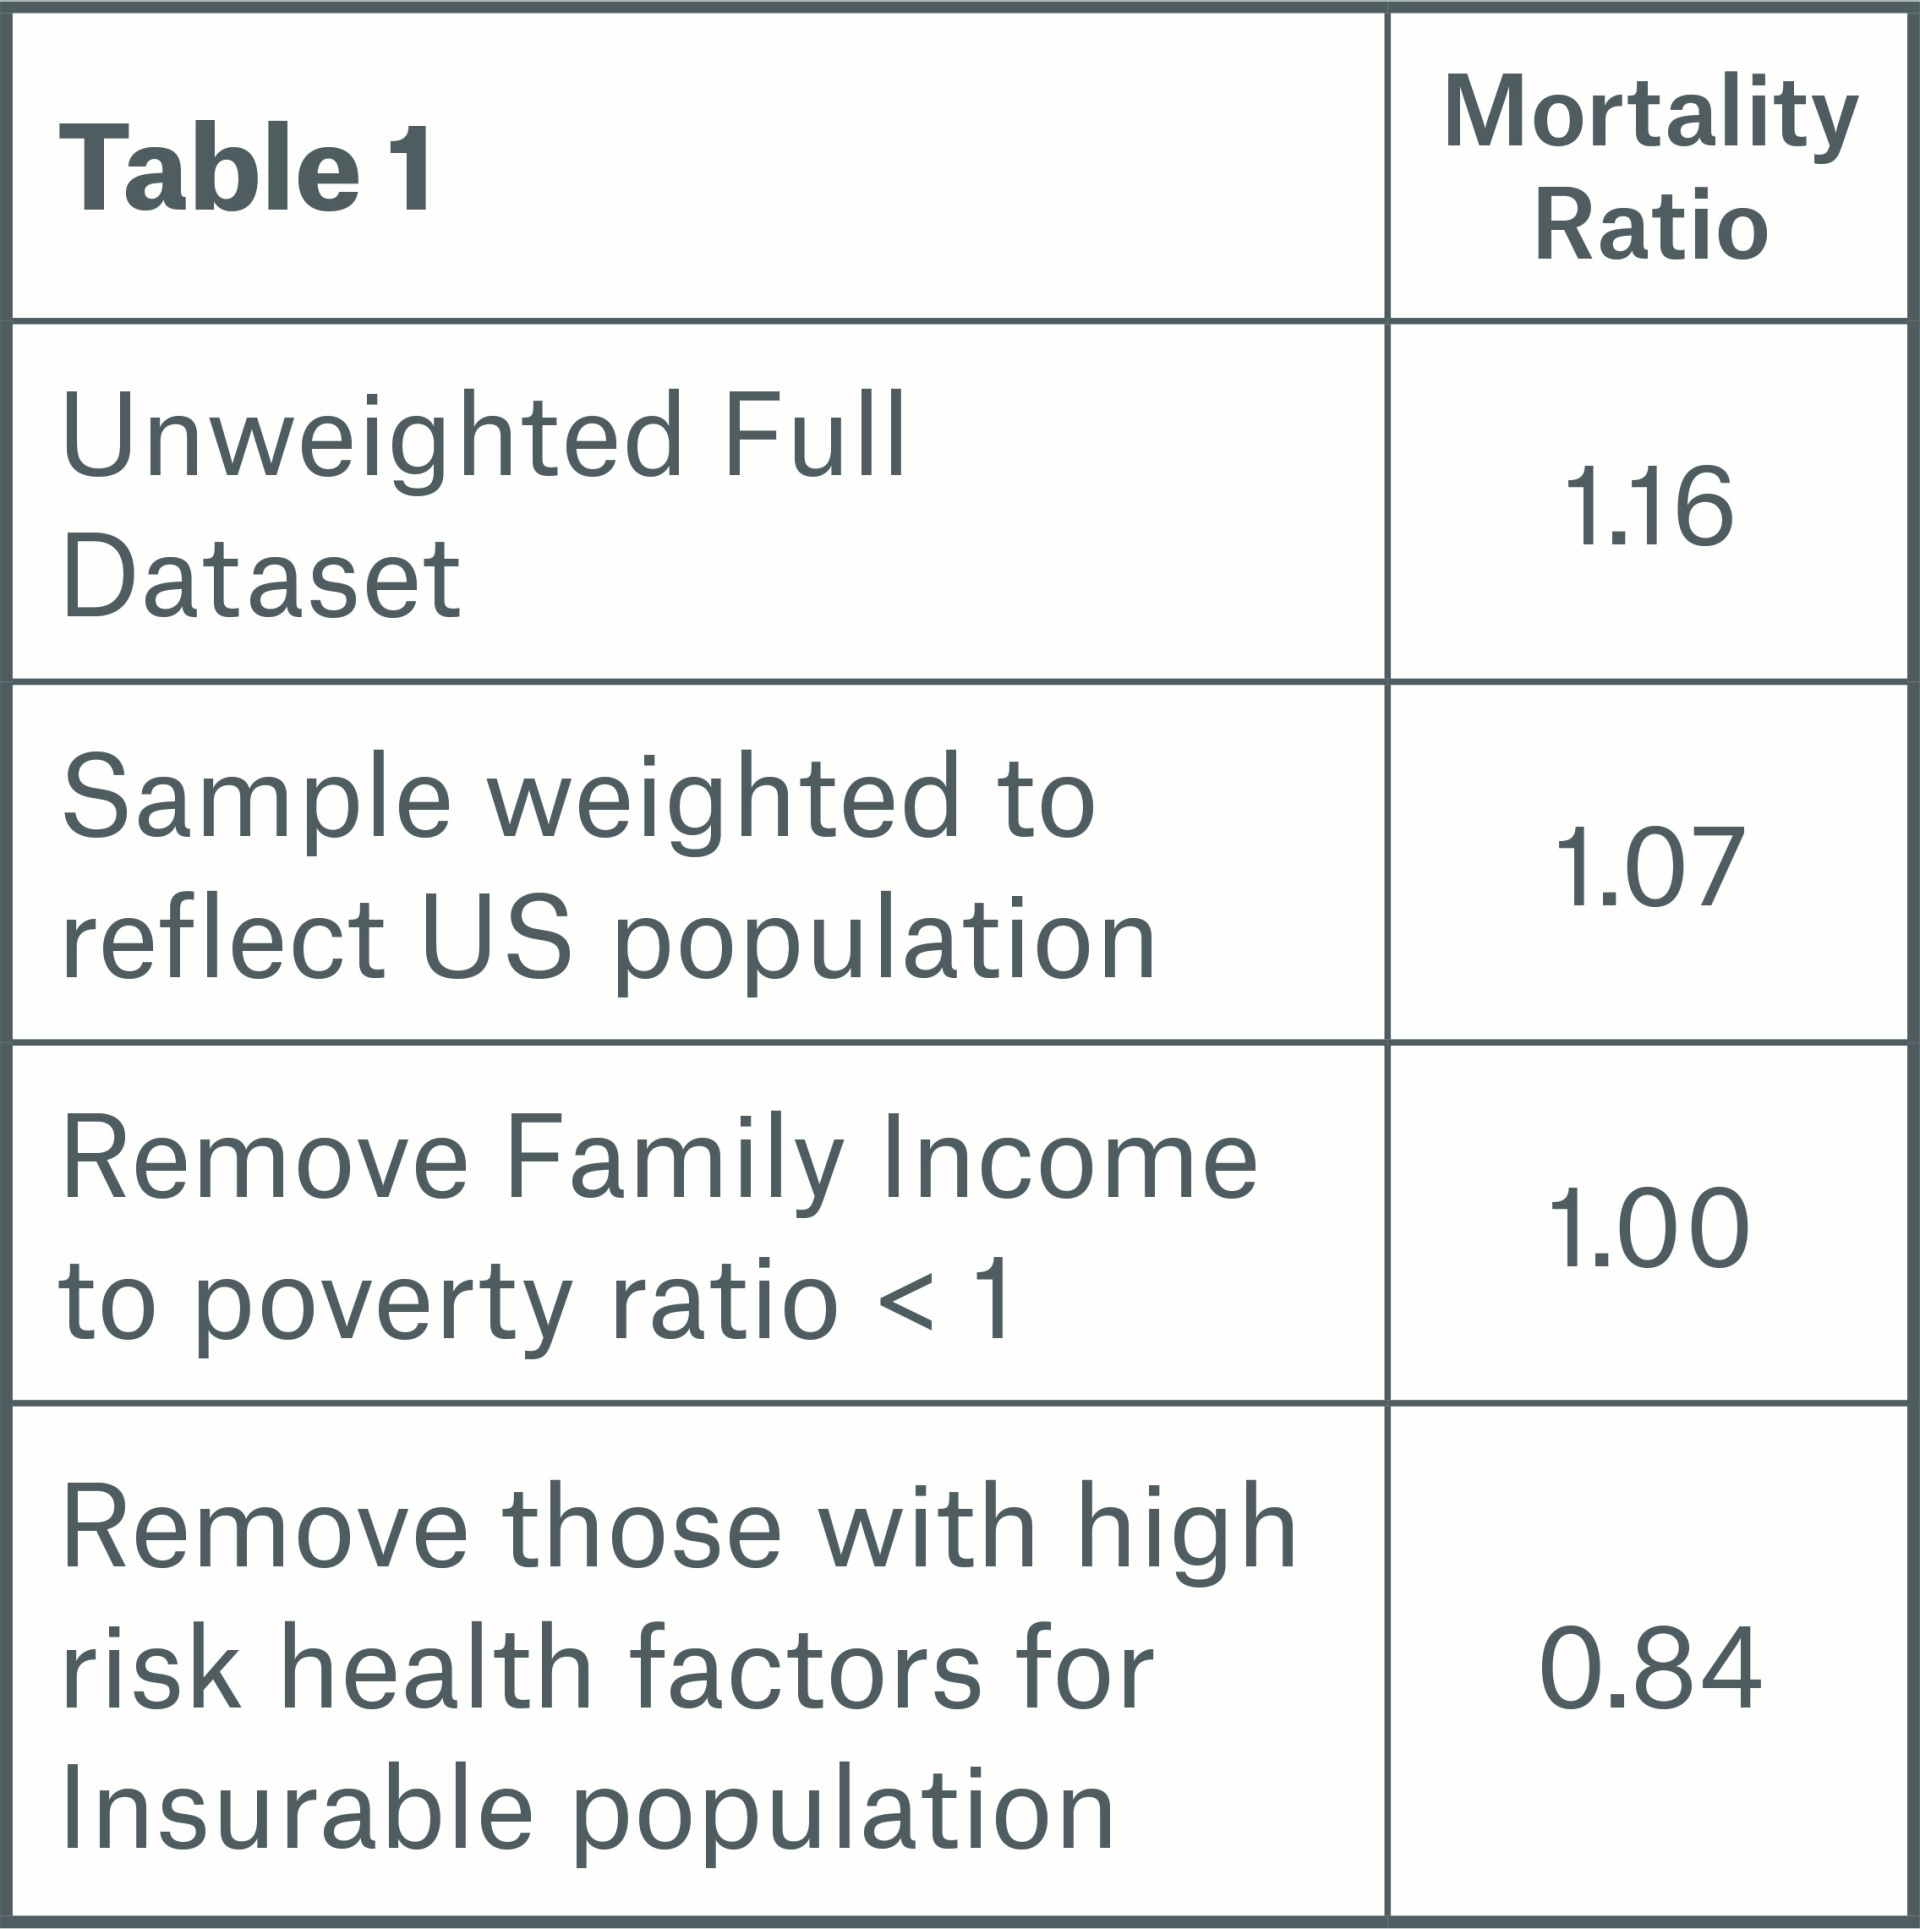 Table 1 Image xpected mortality ratios